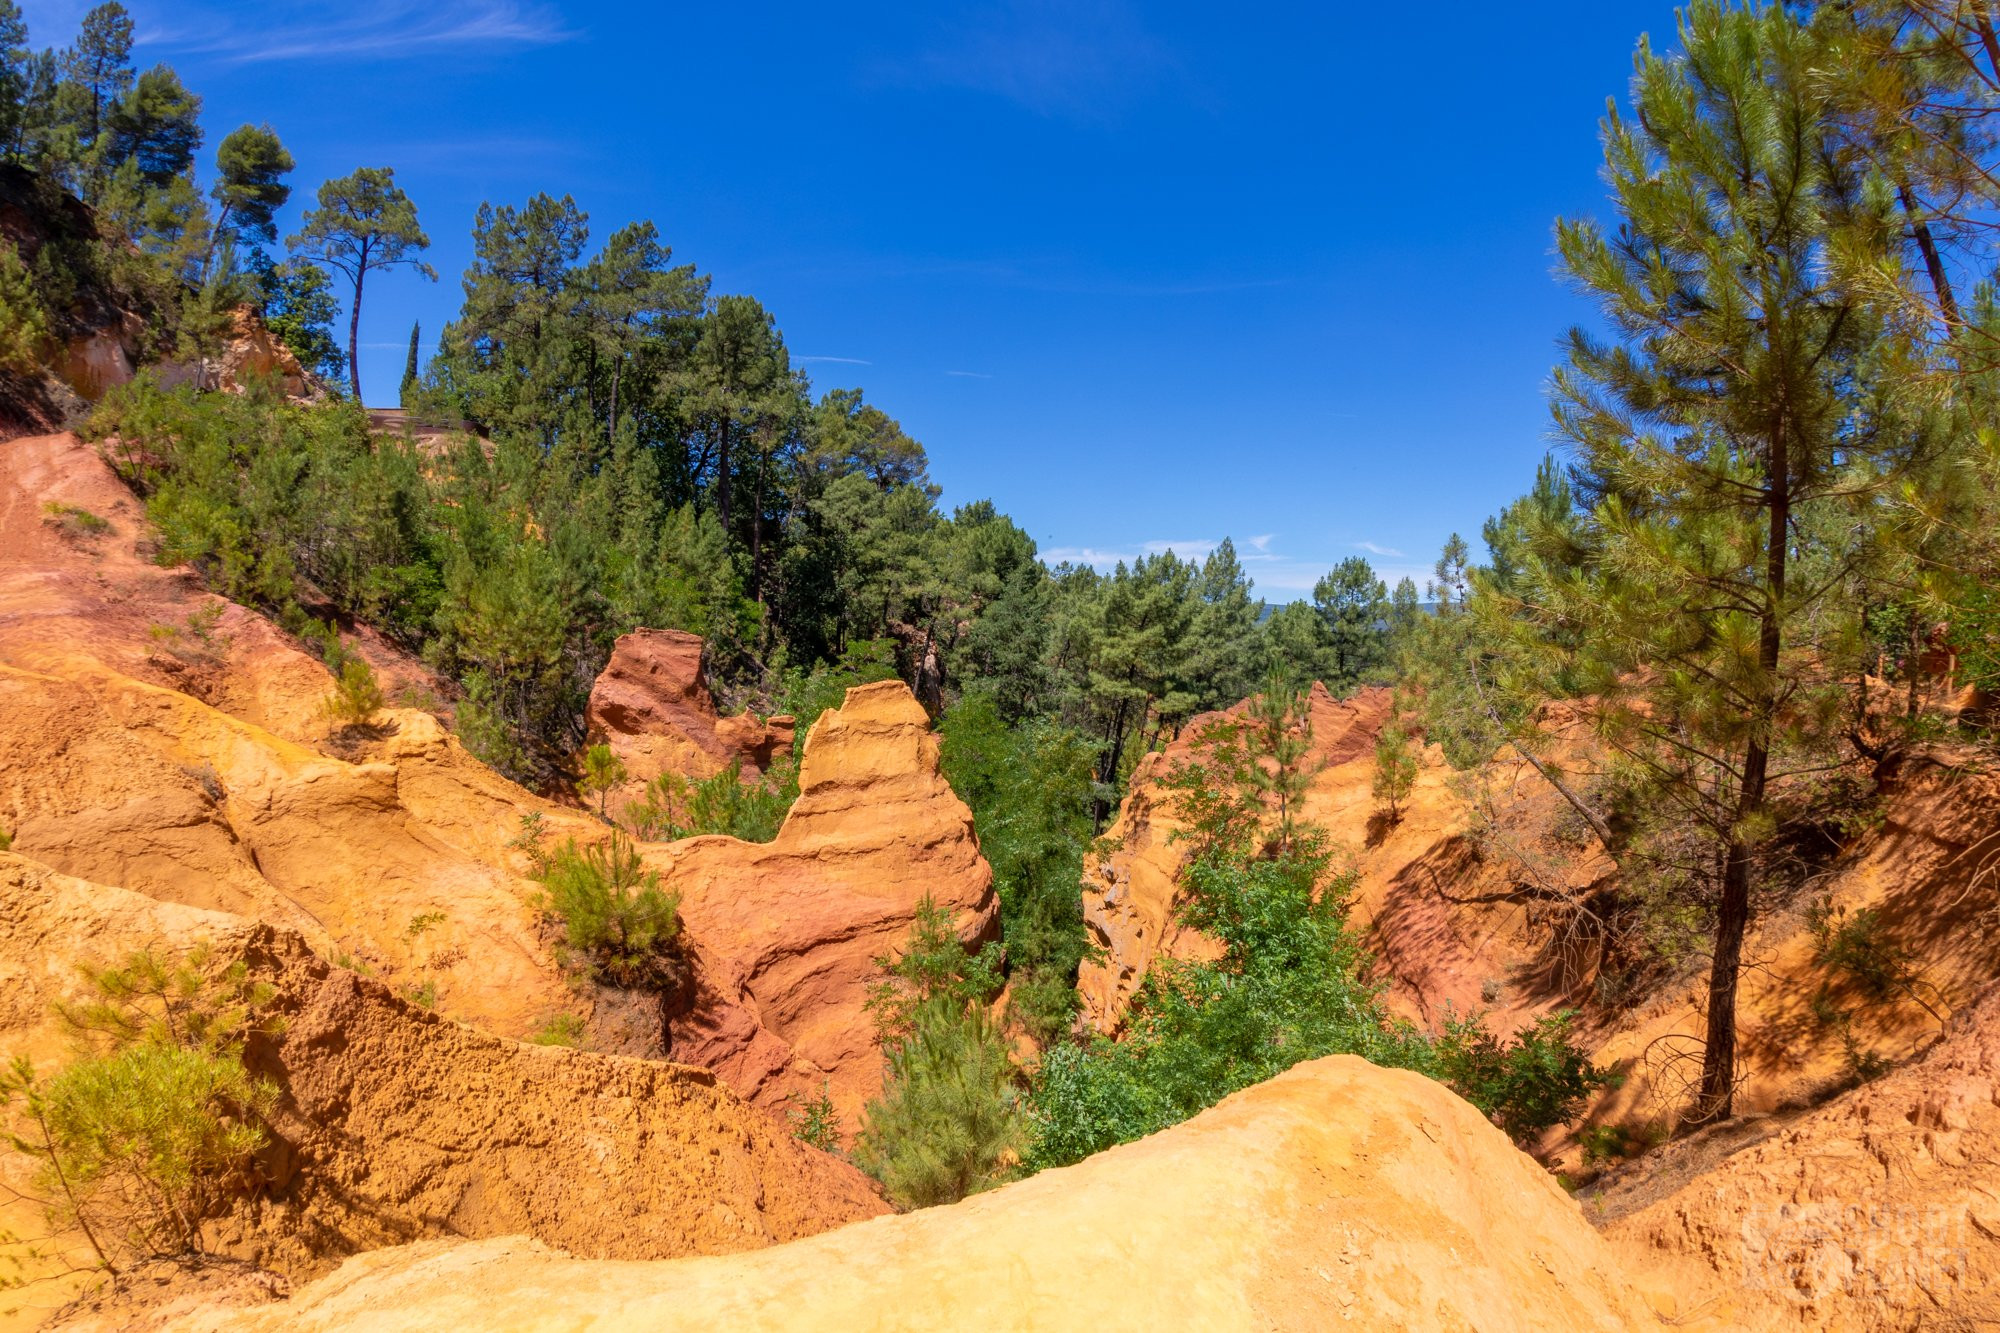 Ochre cliffs and trail, Roussillon Vaucluse, France